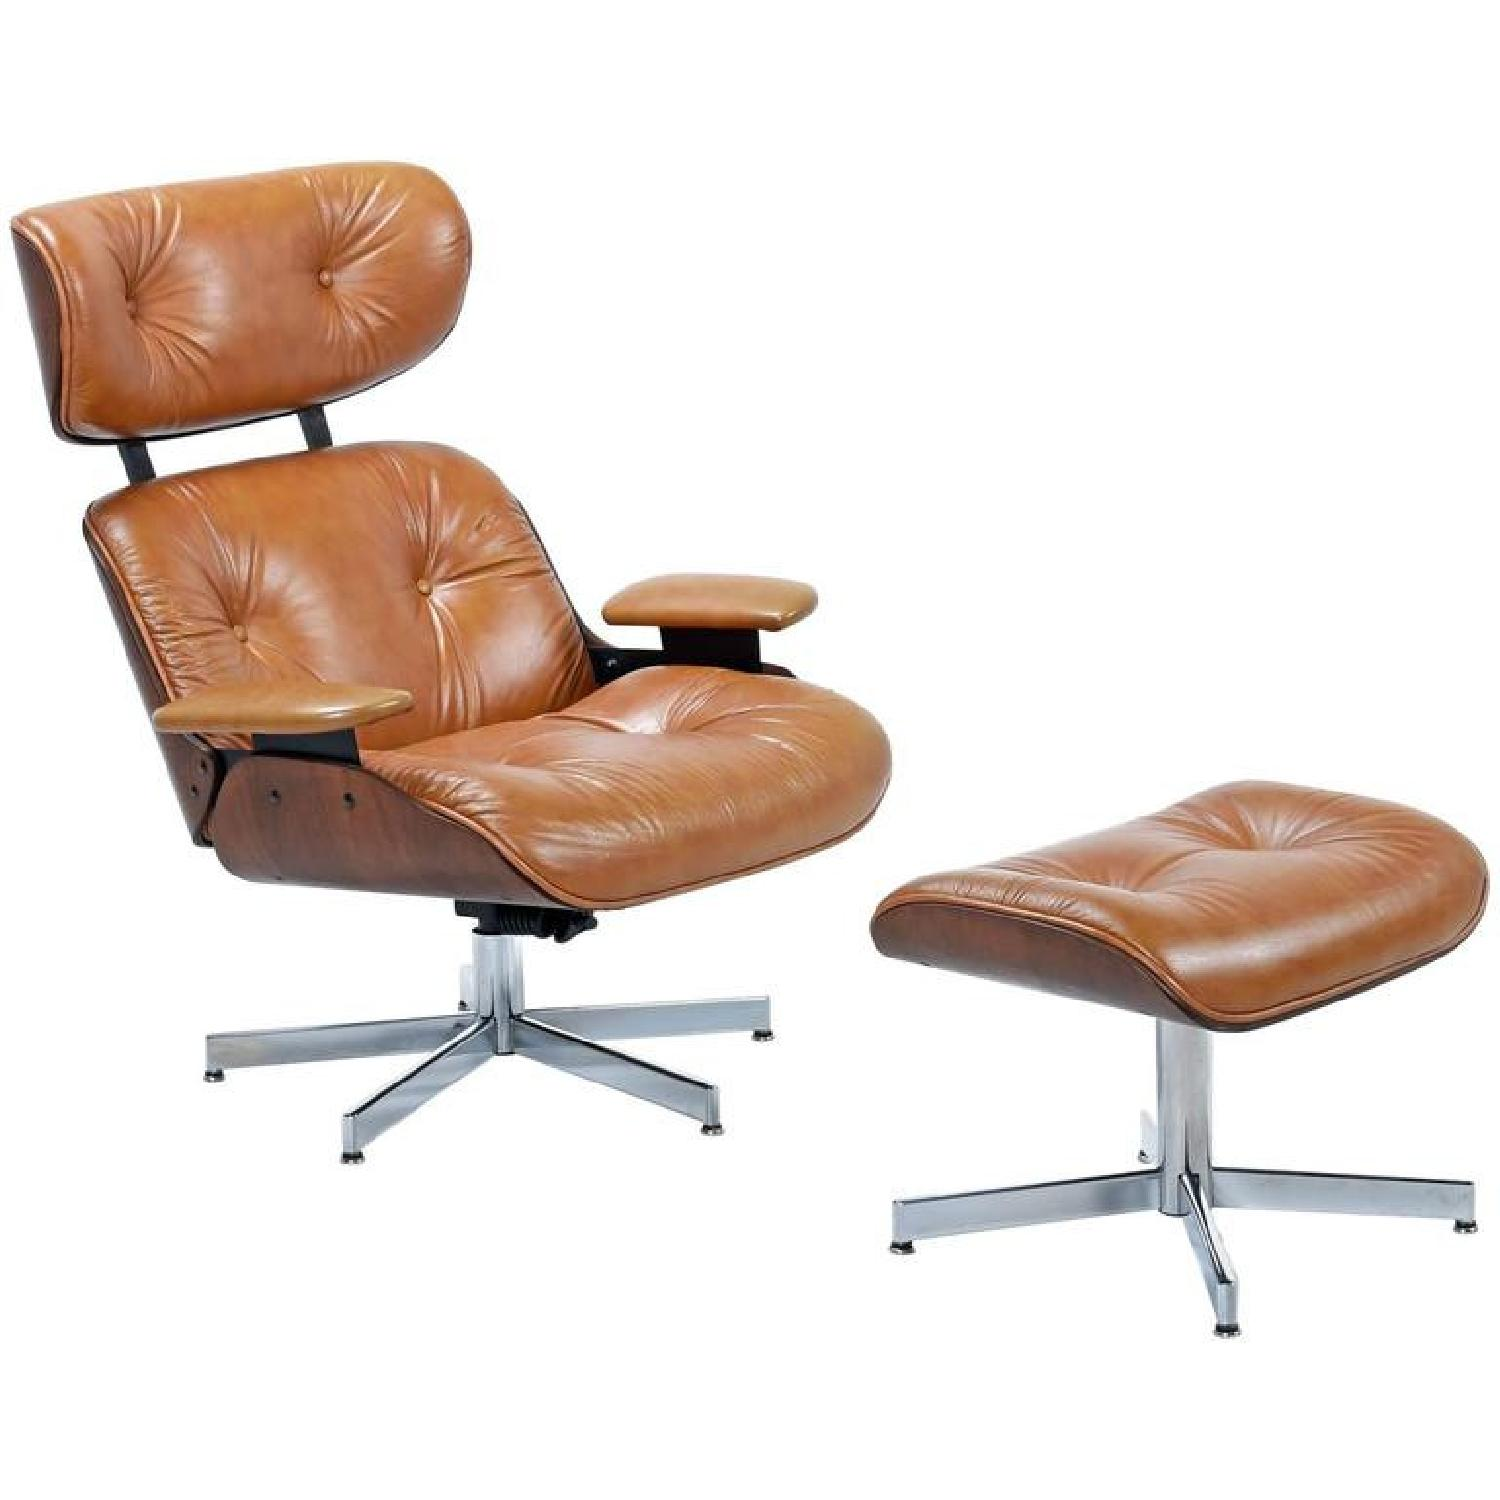 Plycraft Eames-Style Lounge Chair & Ottoman - image-0